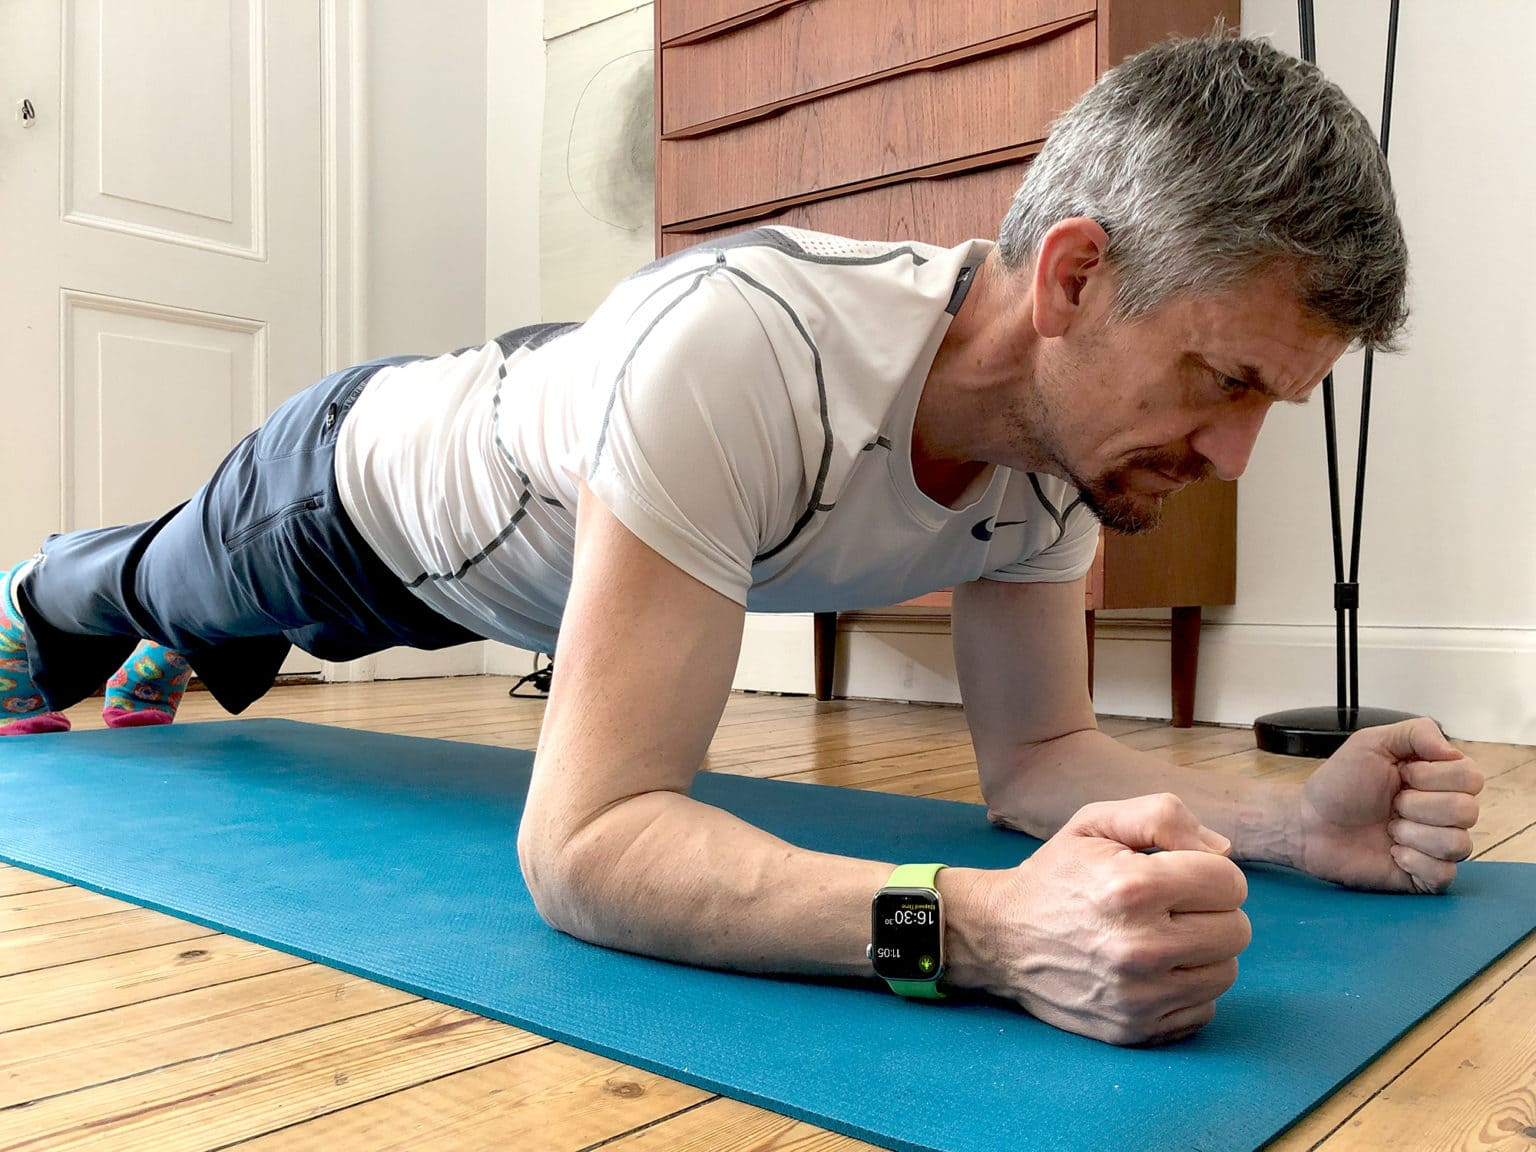 Our essential guide to building rock-hard abs (with a little help from Apple Watch).